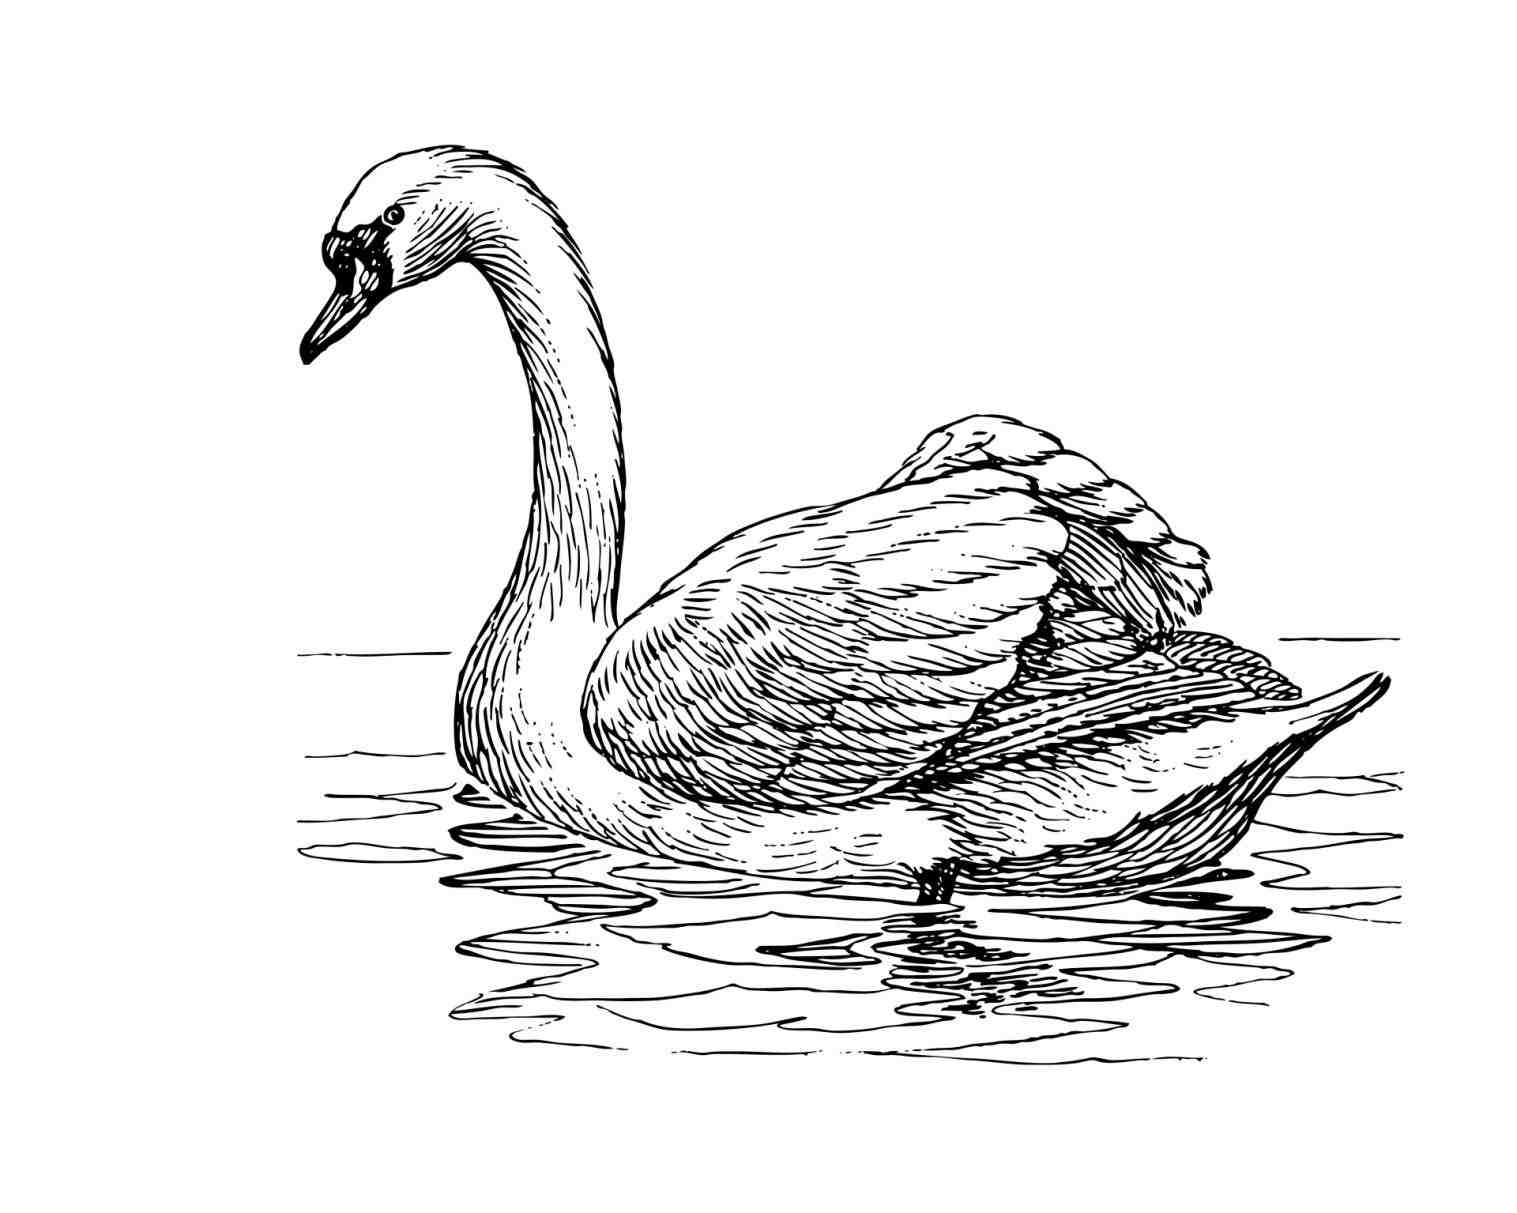 swan outline drawings swan drawing images at getdrawings free download outline drawings swan